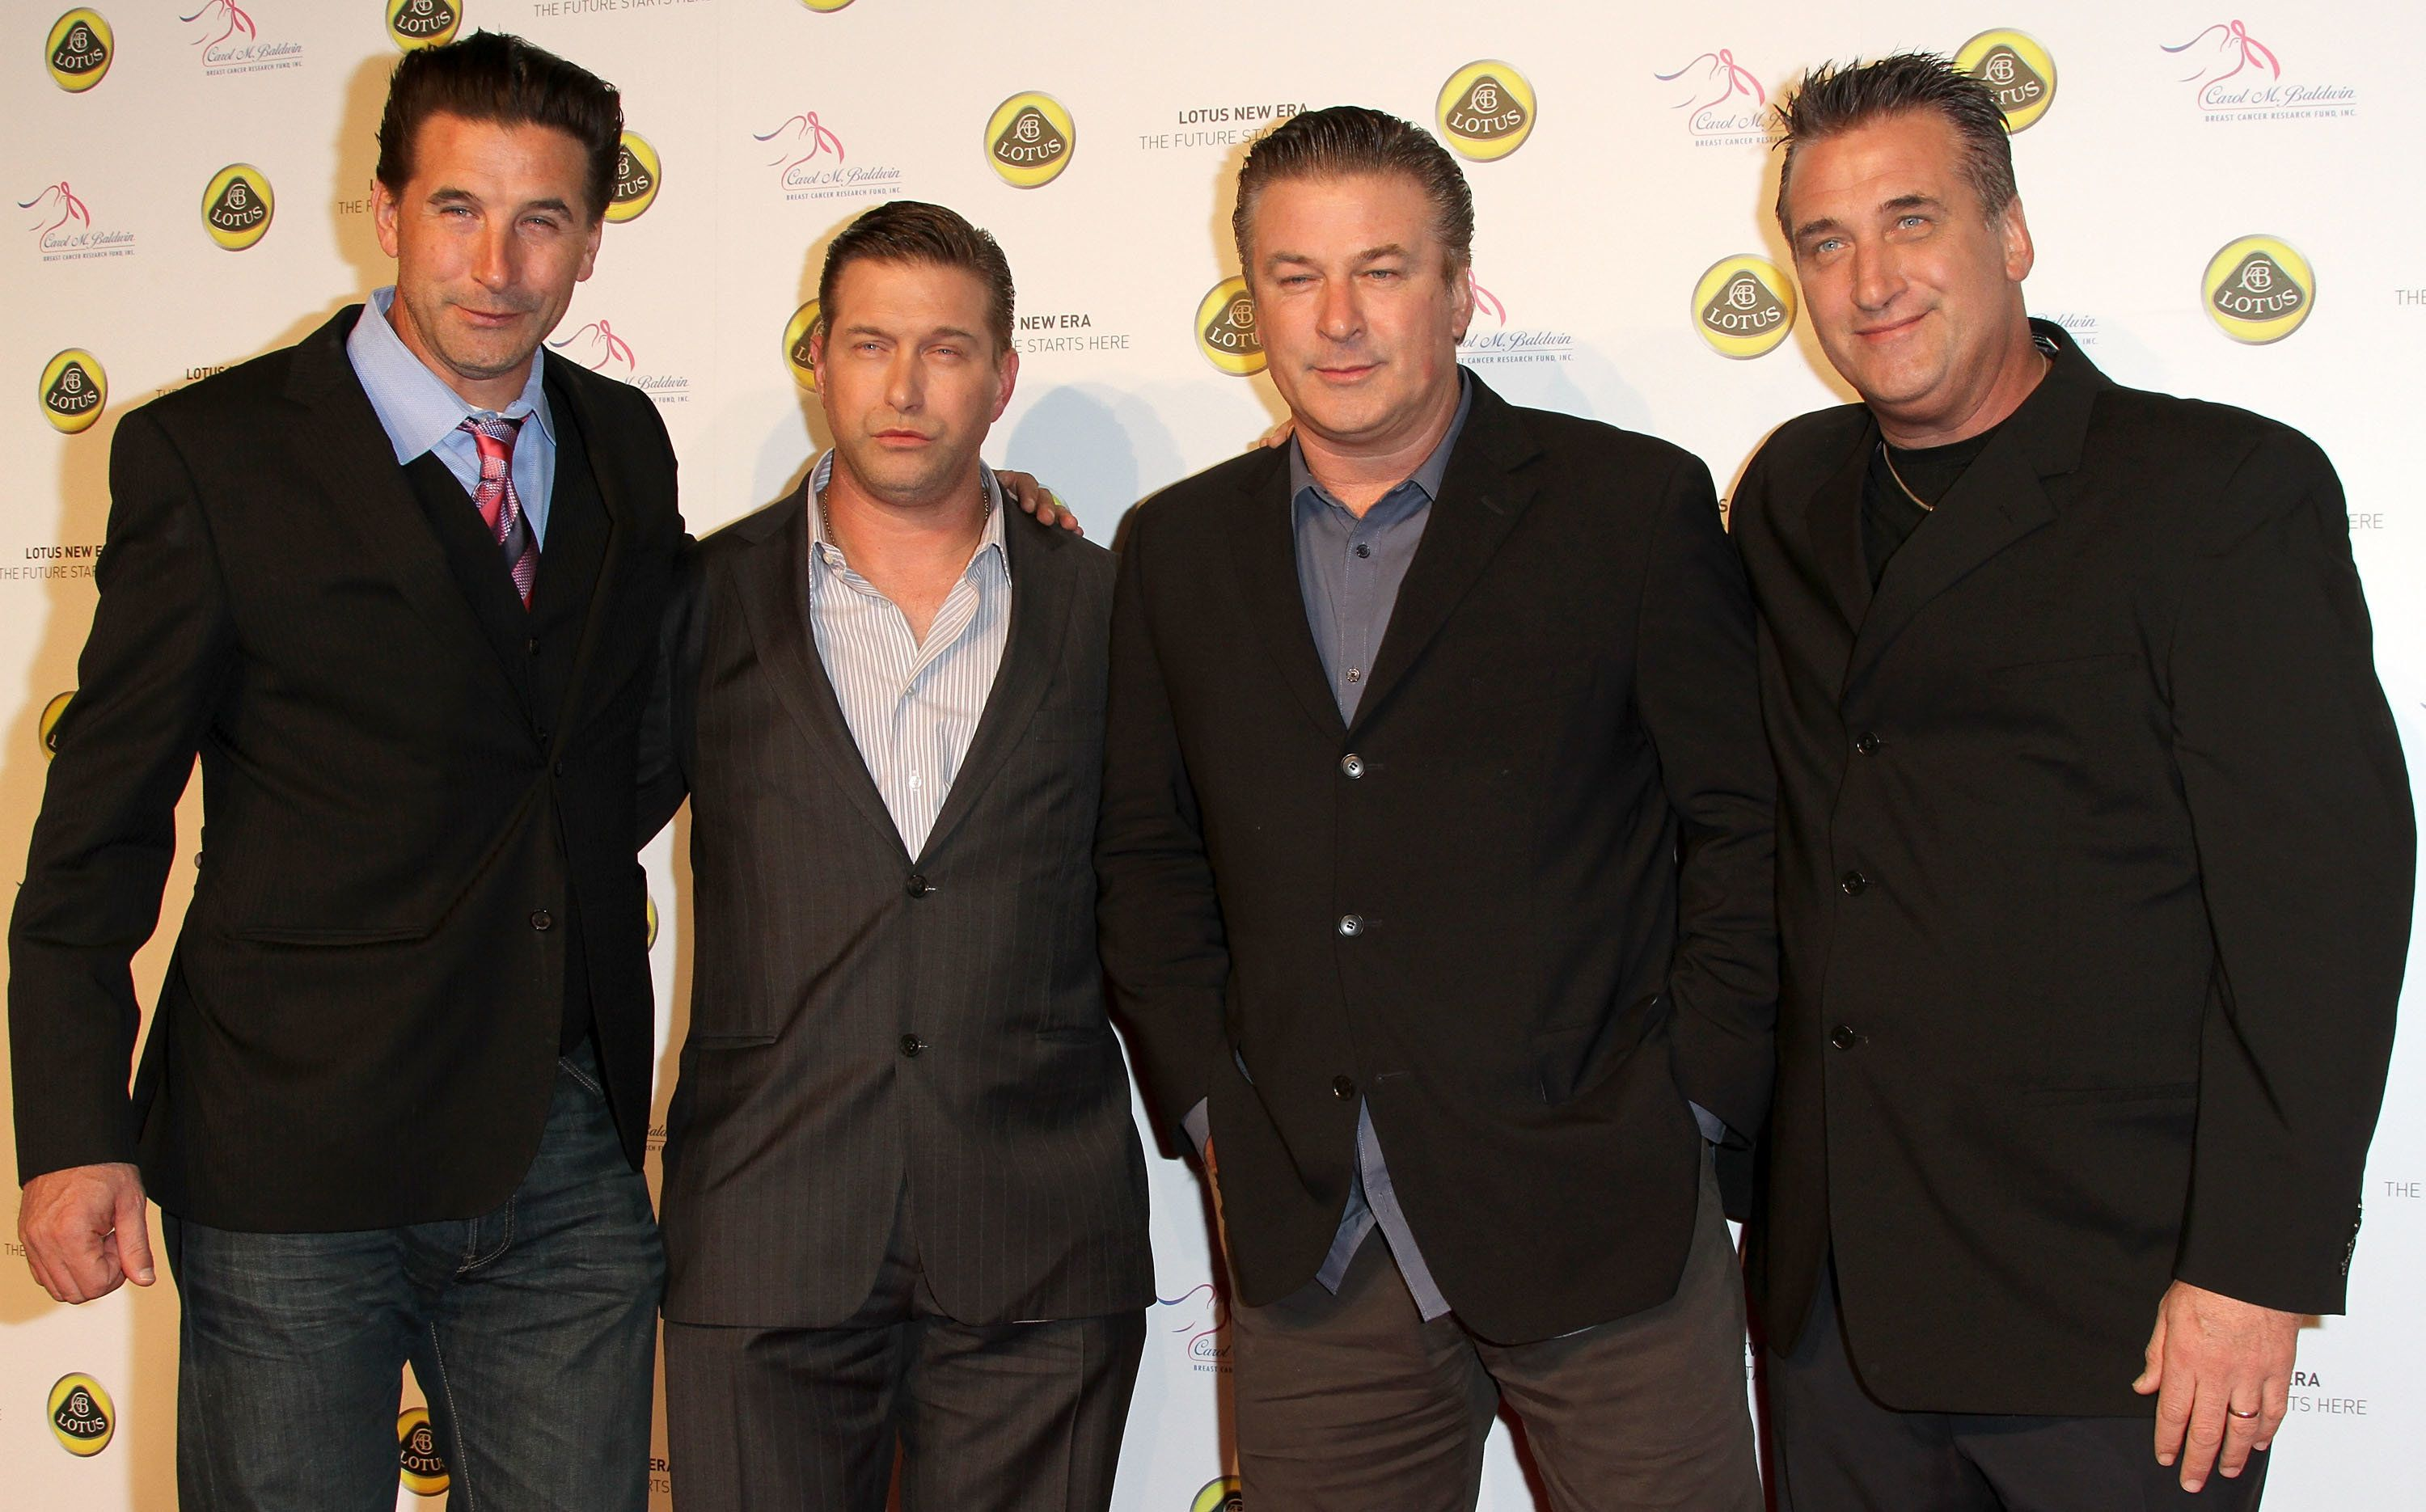 (L-R) Actors and brothers Billy, Stephen, Alec and Daniel Baldwin arrive for the Lotus Cars Launch event on November 12, 2010 in Los Angeles, California.  AFP PHOTO/VALERIE MACON (Photo credit should read VALERIE MACON/AFP/Getty Images)